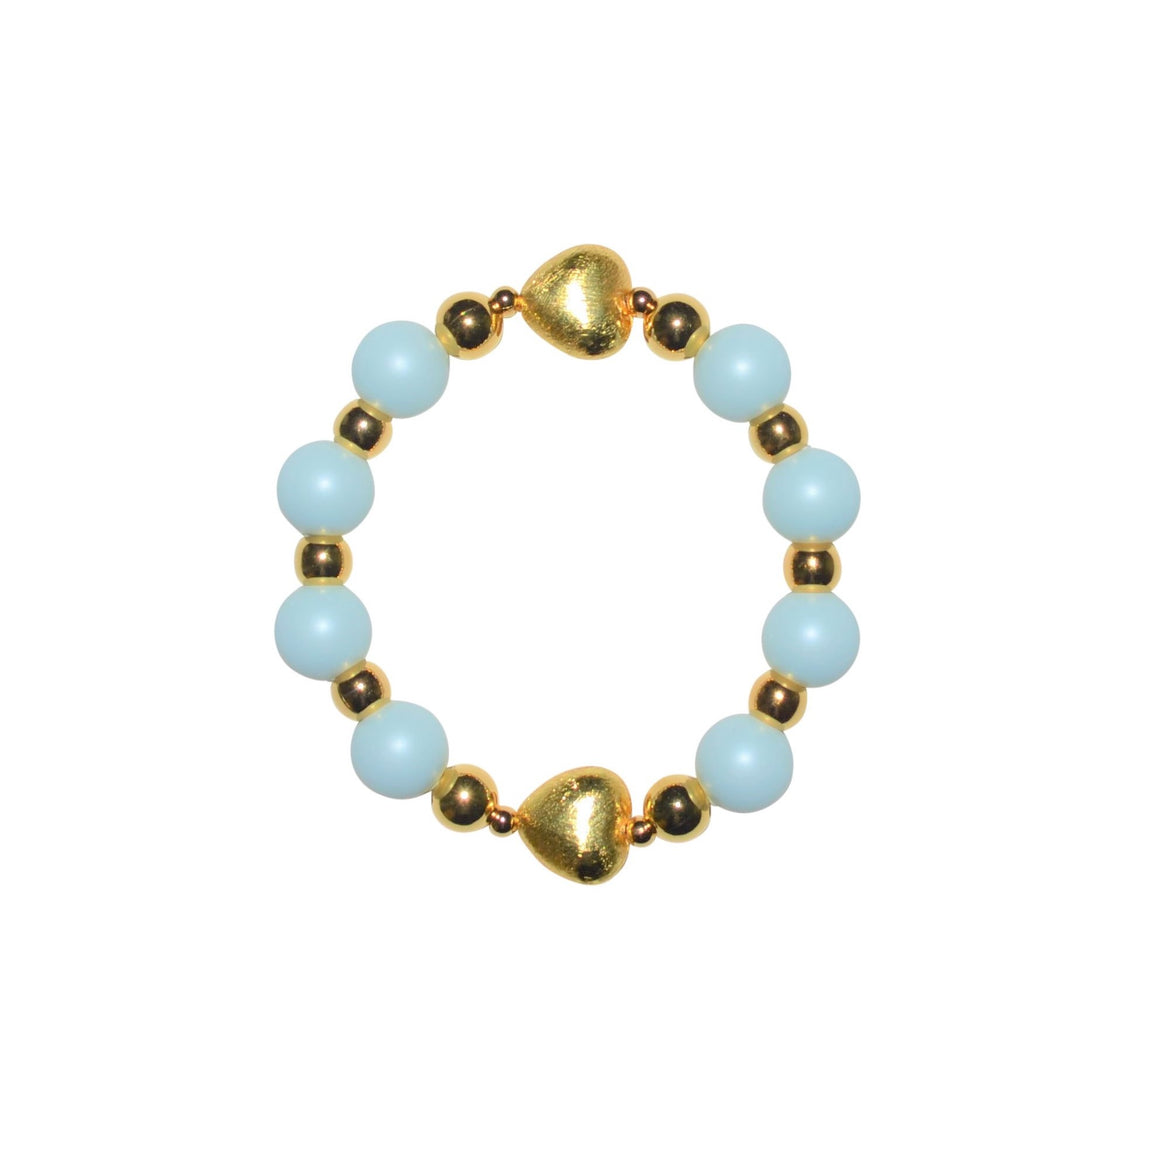 TATE HUDSON SWAROVSKI LIGHTEST BLUE PEARL HEART BRACELET